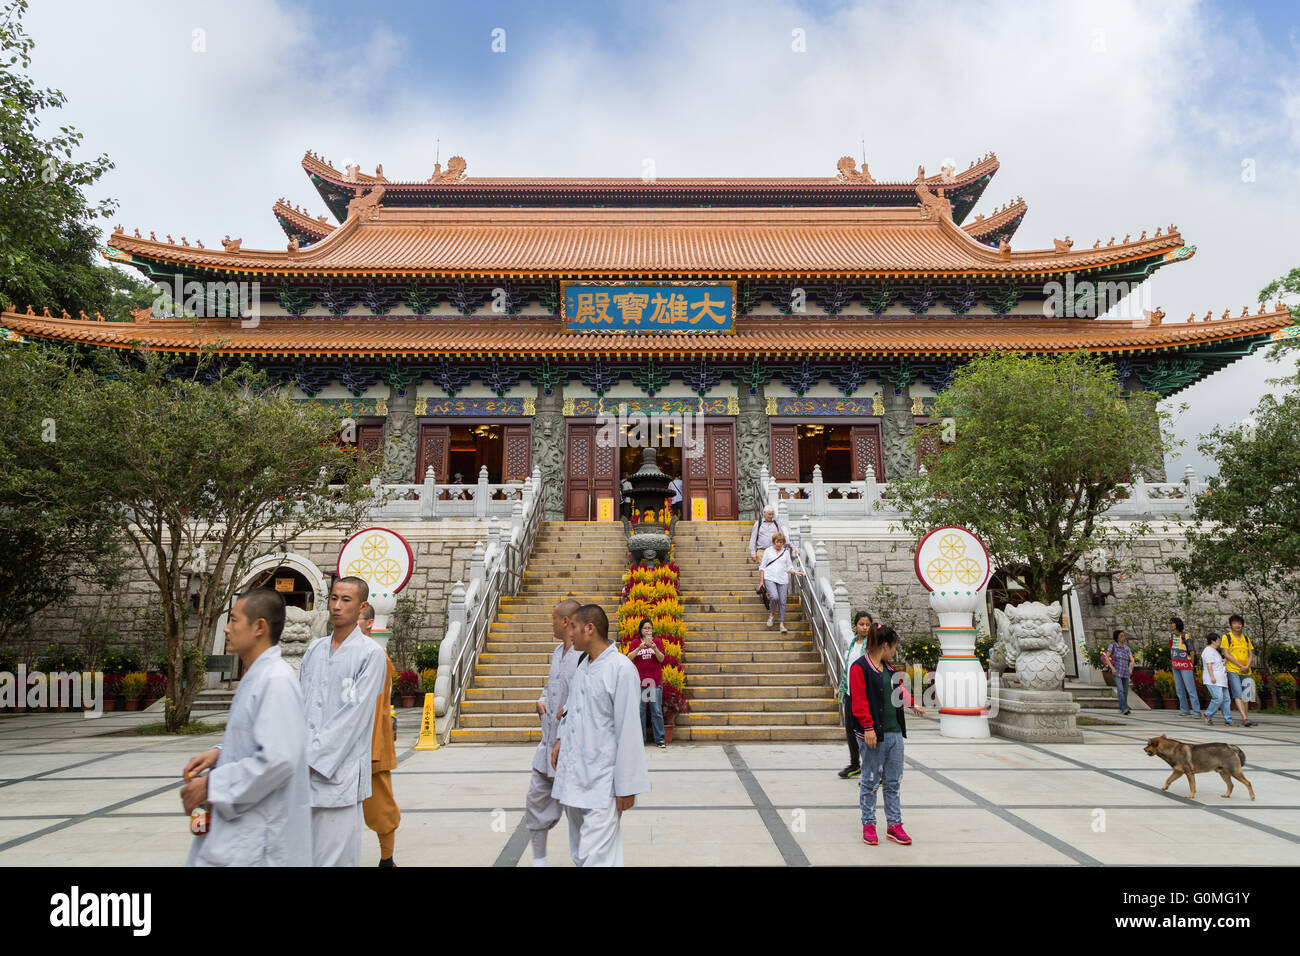 Monks and tourists in front of the Main Shrine Hall of Buddha at the Po Lin Monastery on Lantau Island in Hong Kong, - Stock Image